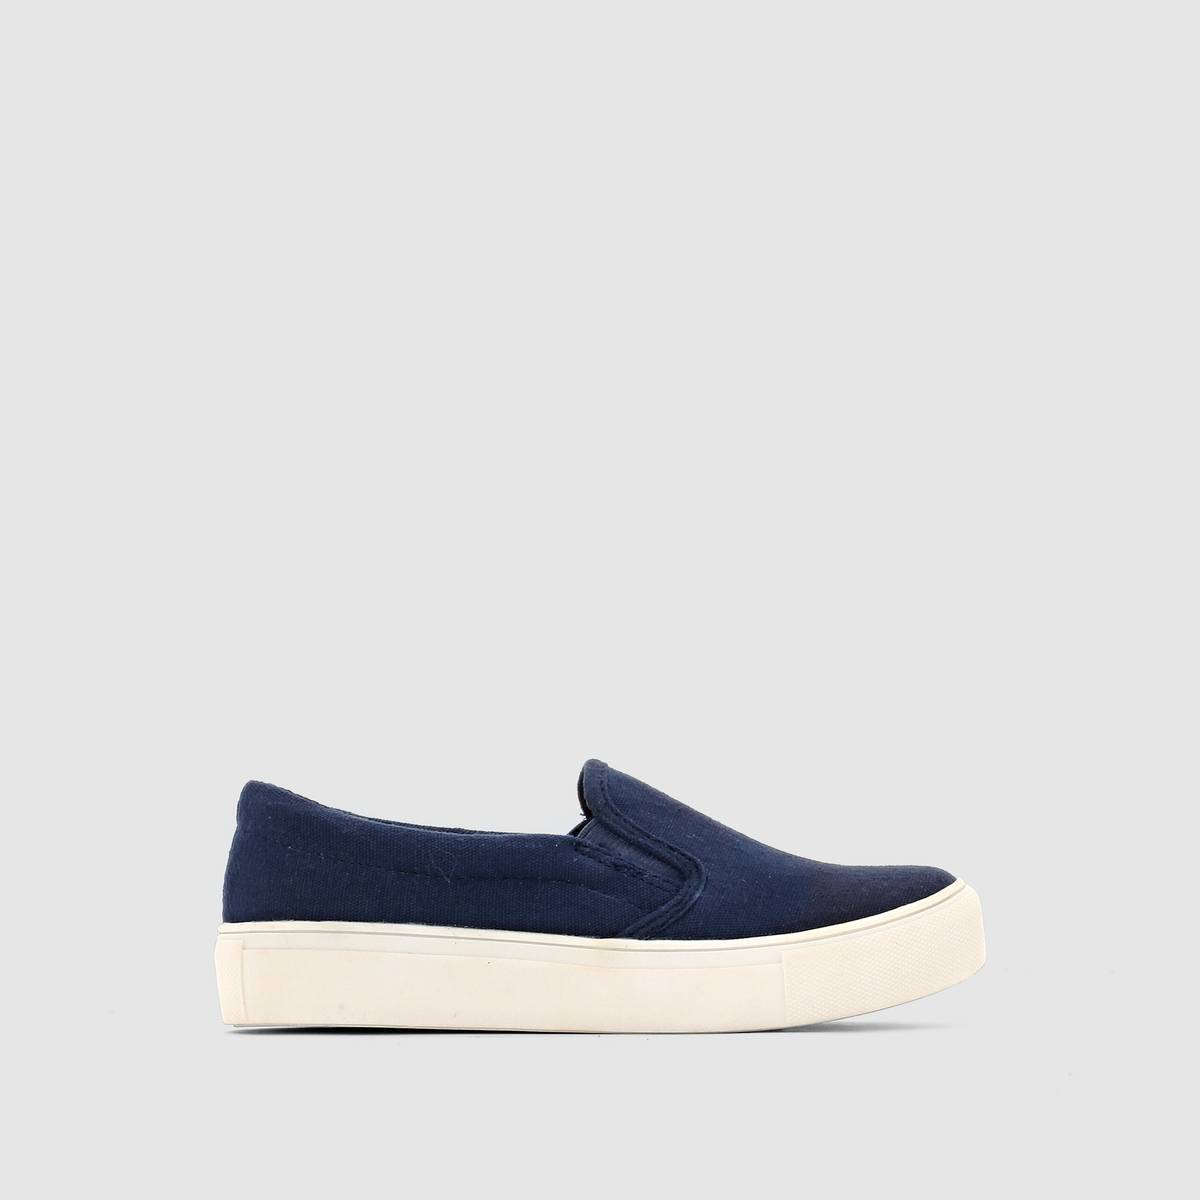 La Redoute Collections Slip-on infantiles azul